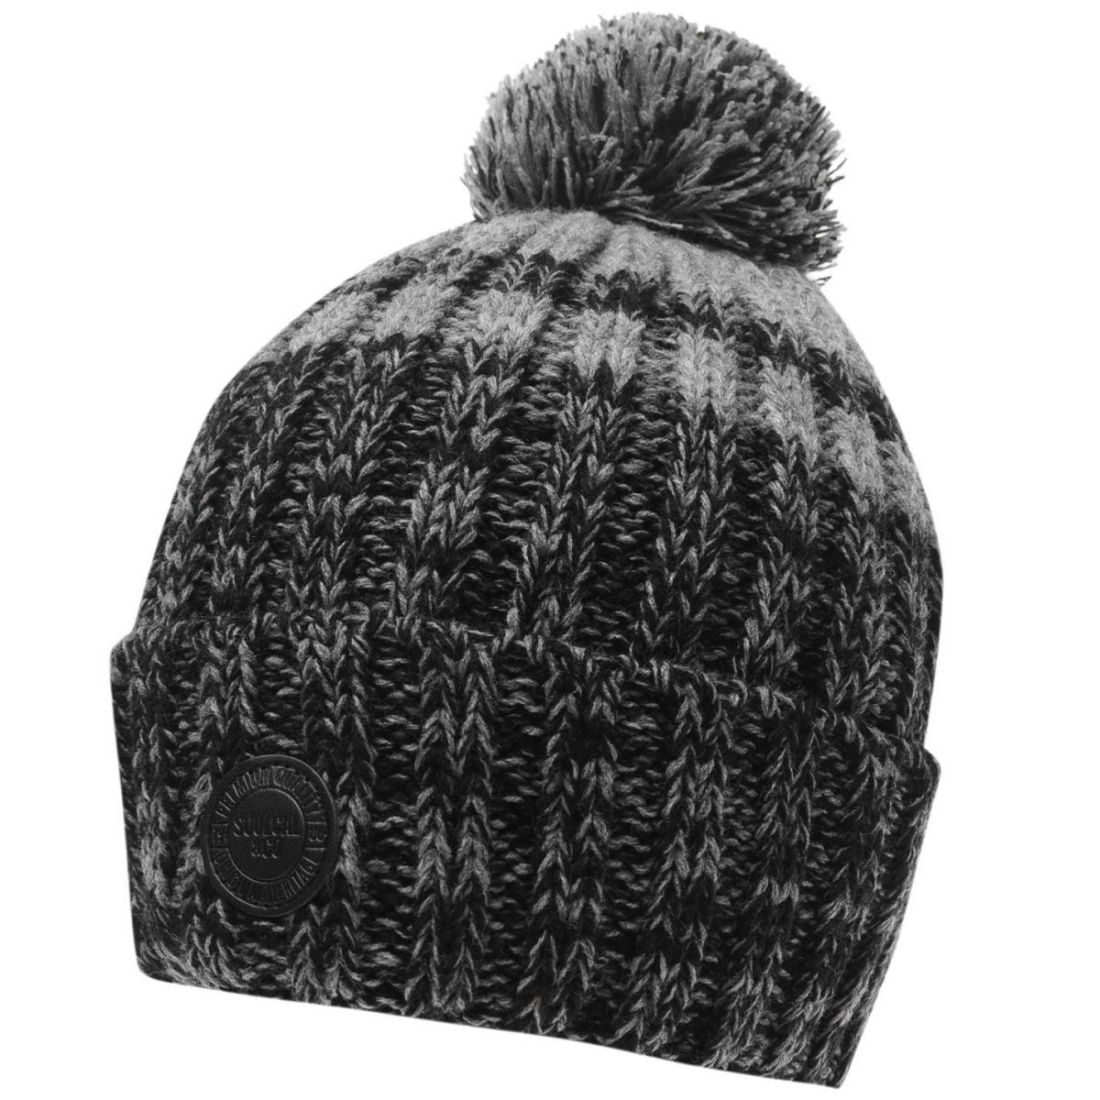 Knitted Mens Hat Patterns Details About Soulcal Mens Alutu Hat Bobble Pattern Knitted